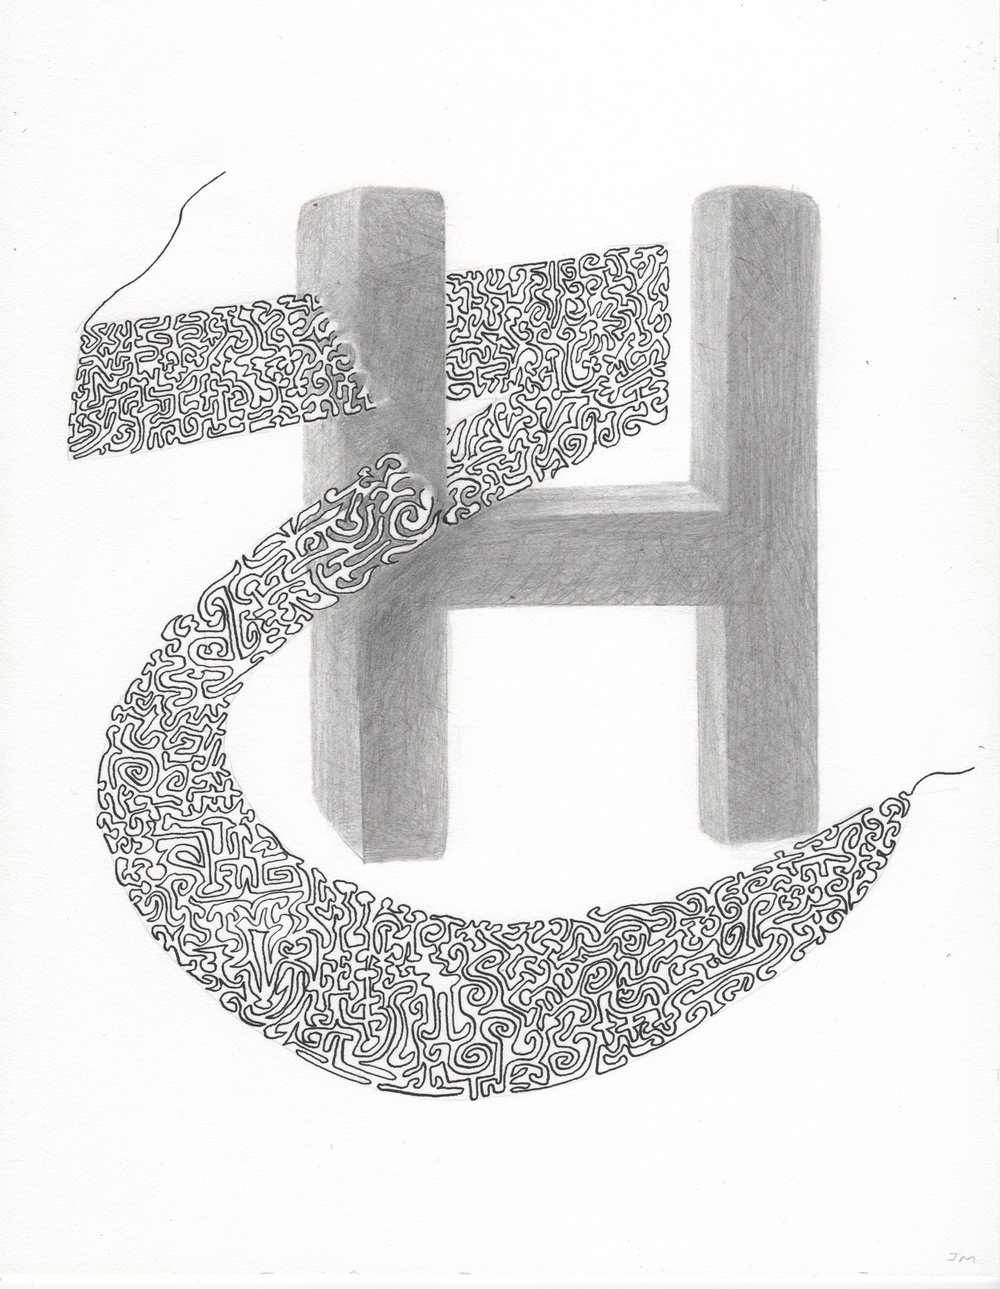 Joel Moskowitz,  Arabic  Haa,  with H,  Ink and pencil on paper, 11x9